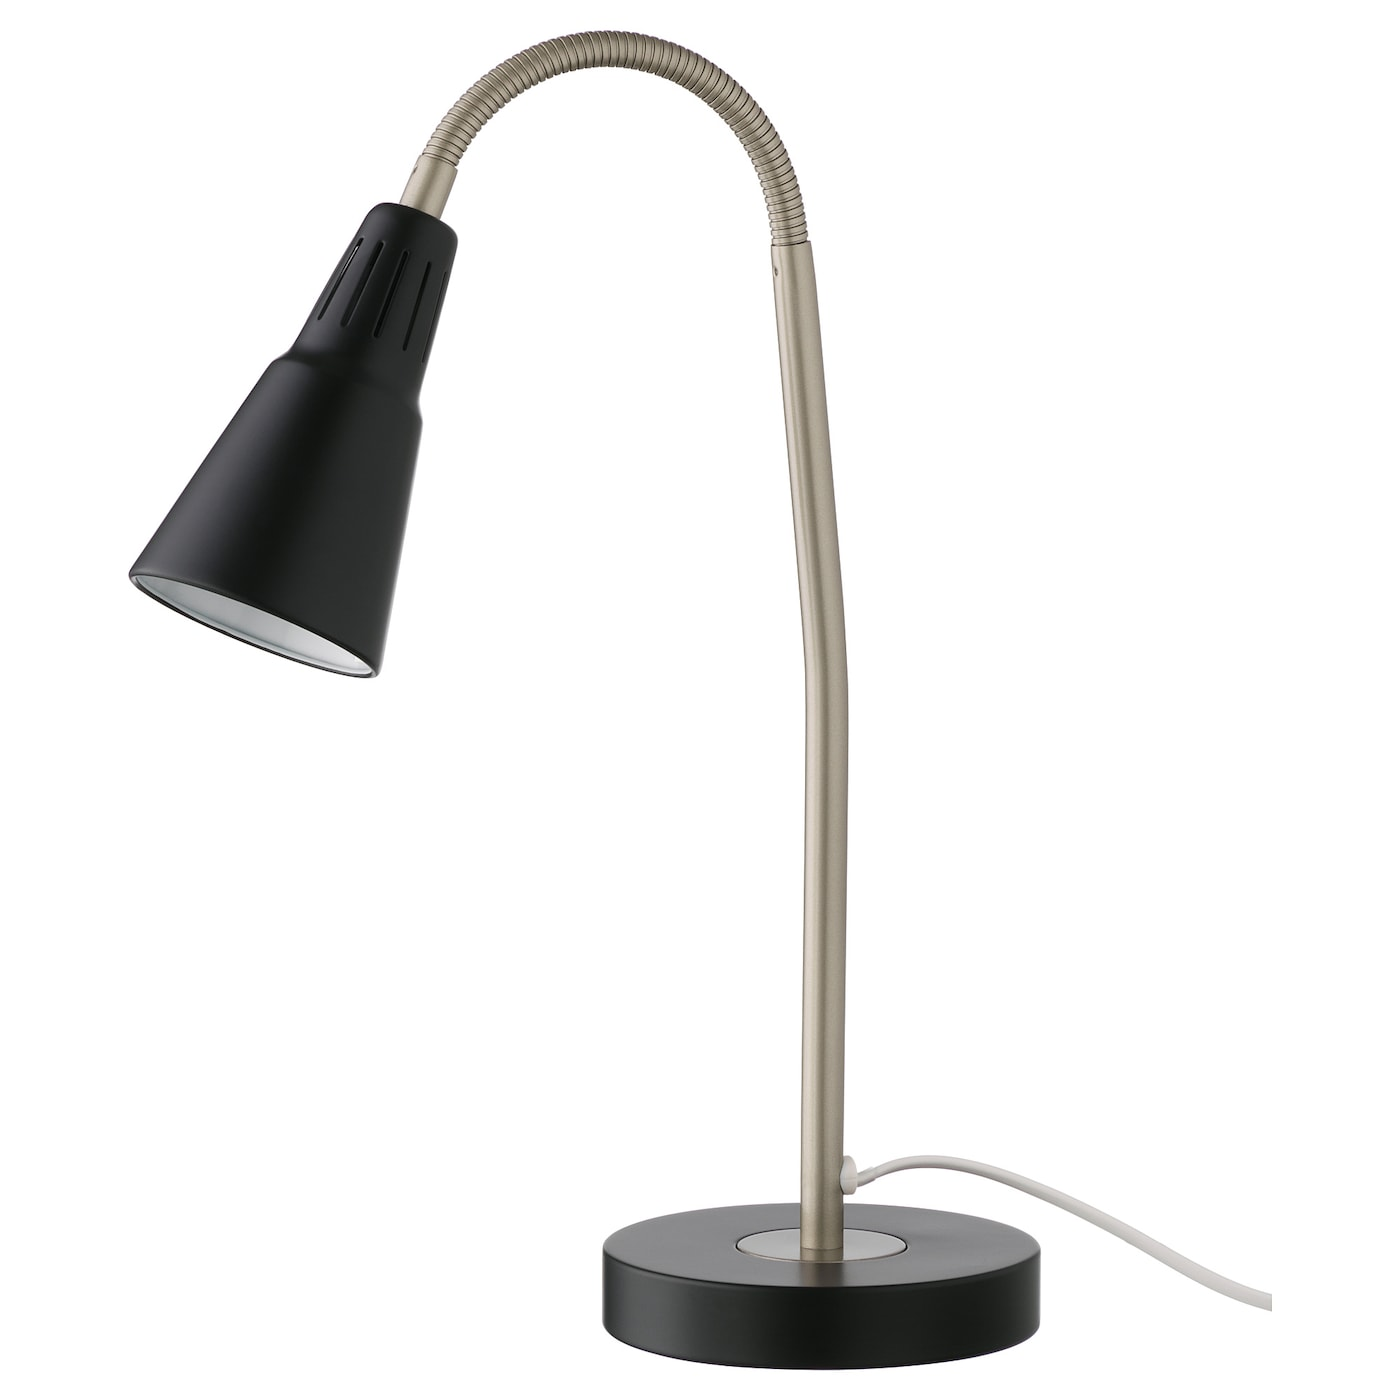 IKEA KVART work lamp Provides a directed light that is great for reading.